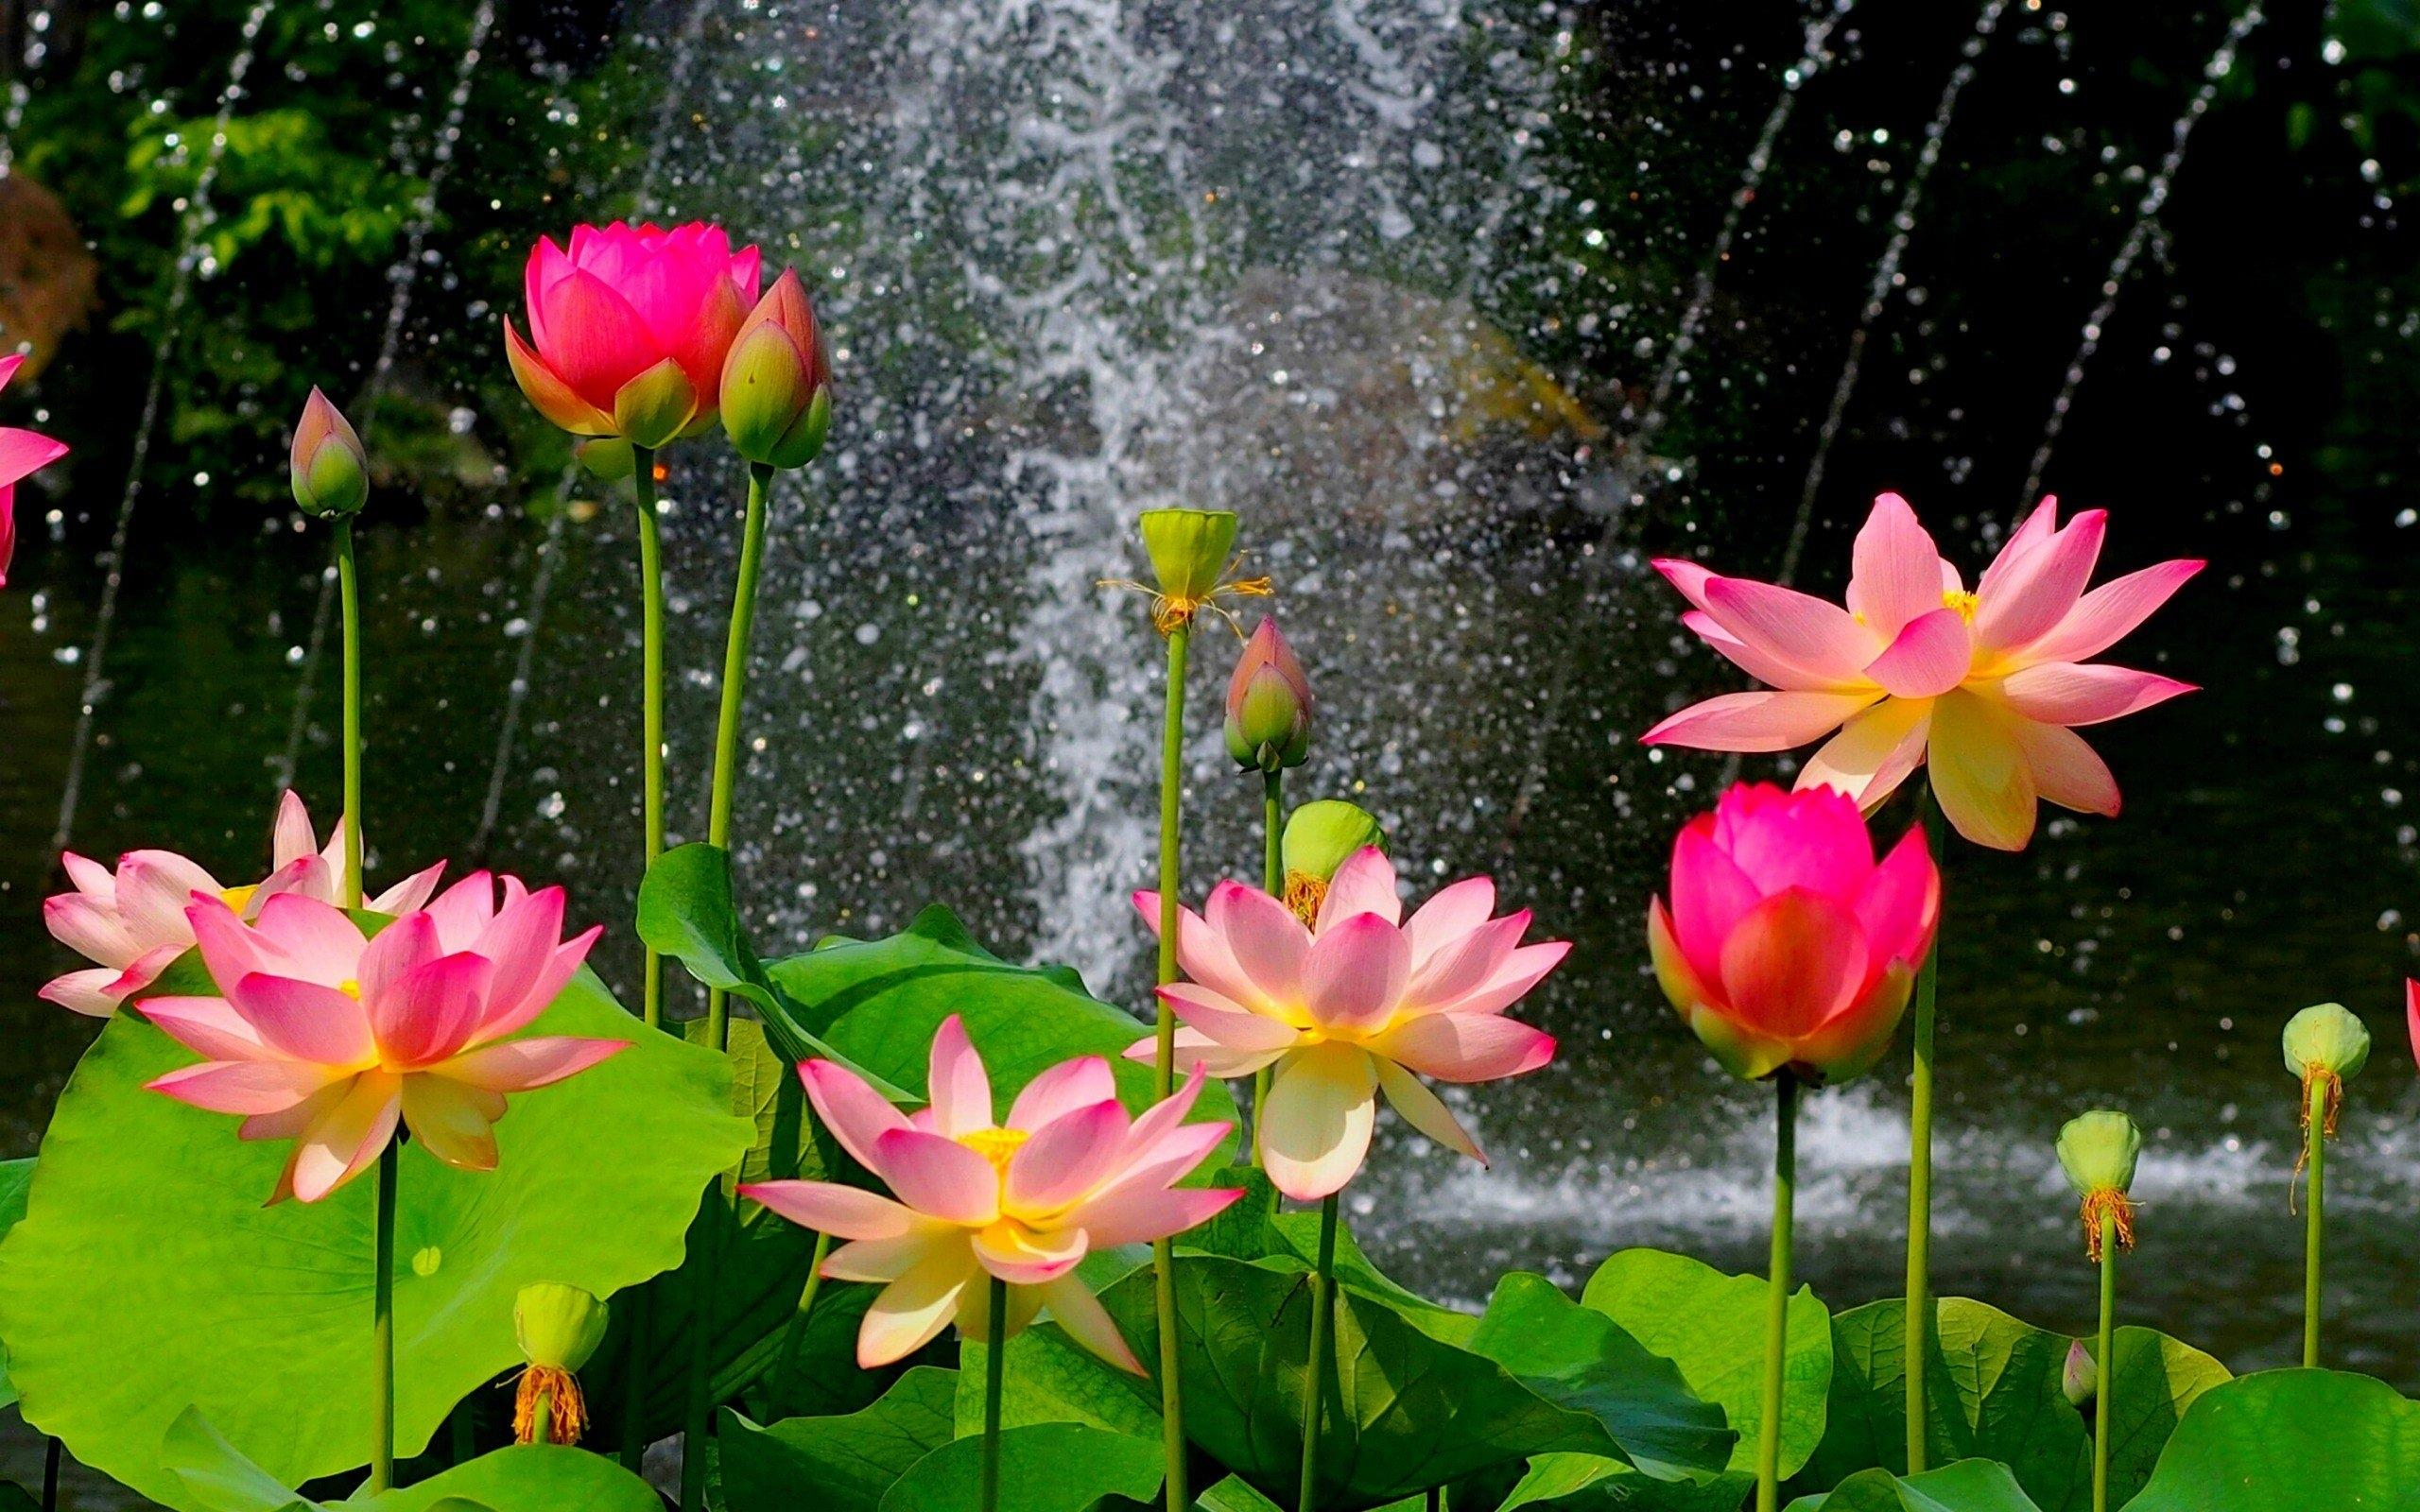 Hd Wallpapers - Most Beautiful Lotus Flower , HD Wallpaper & Backgrounds